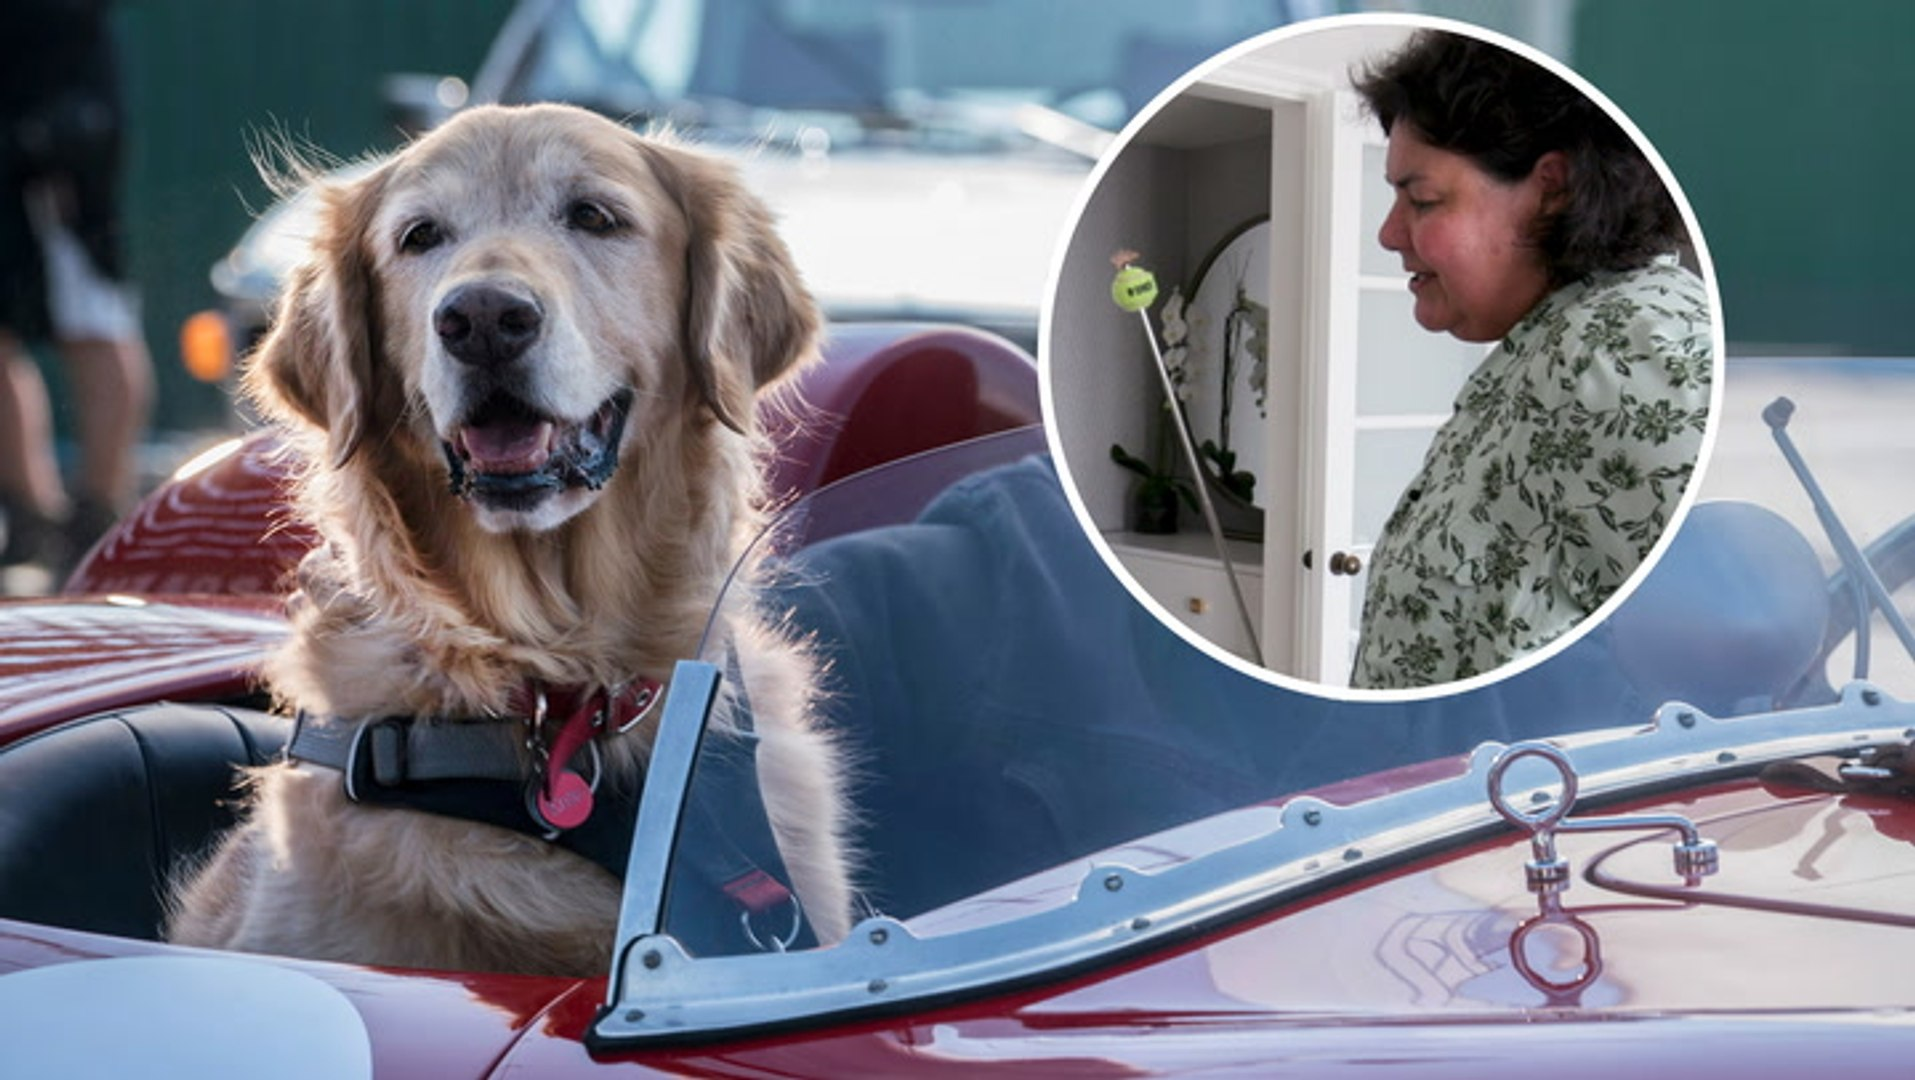 How dogs are trained for movies and TV